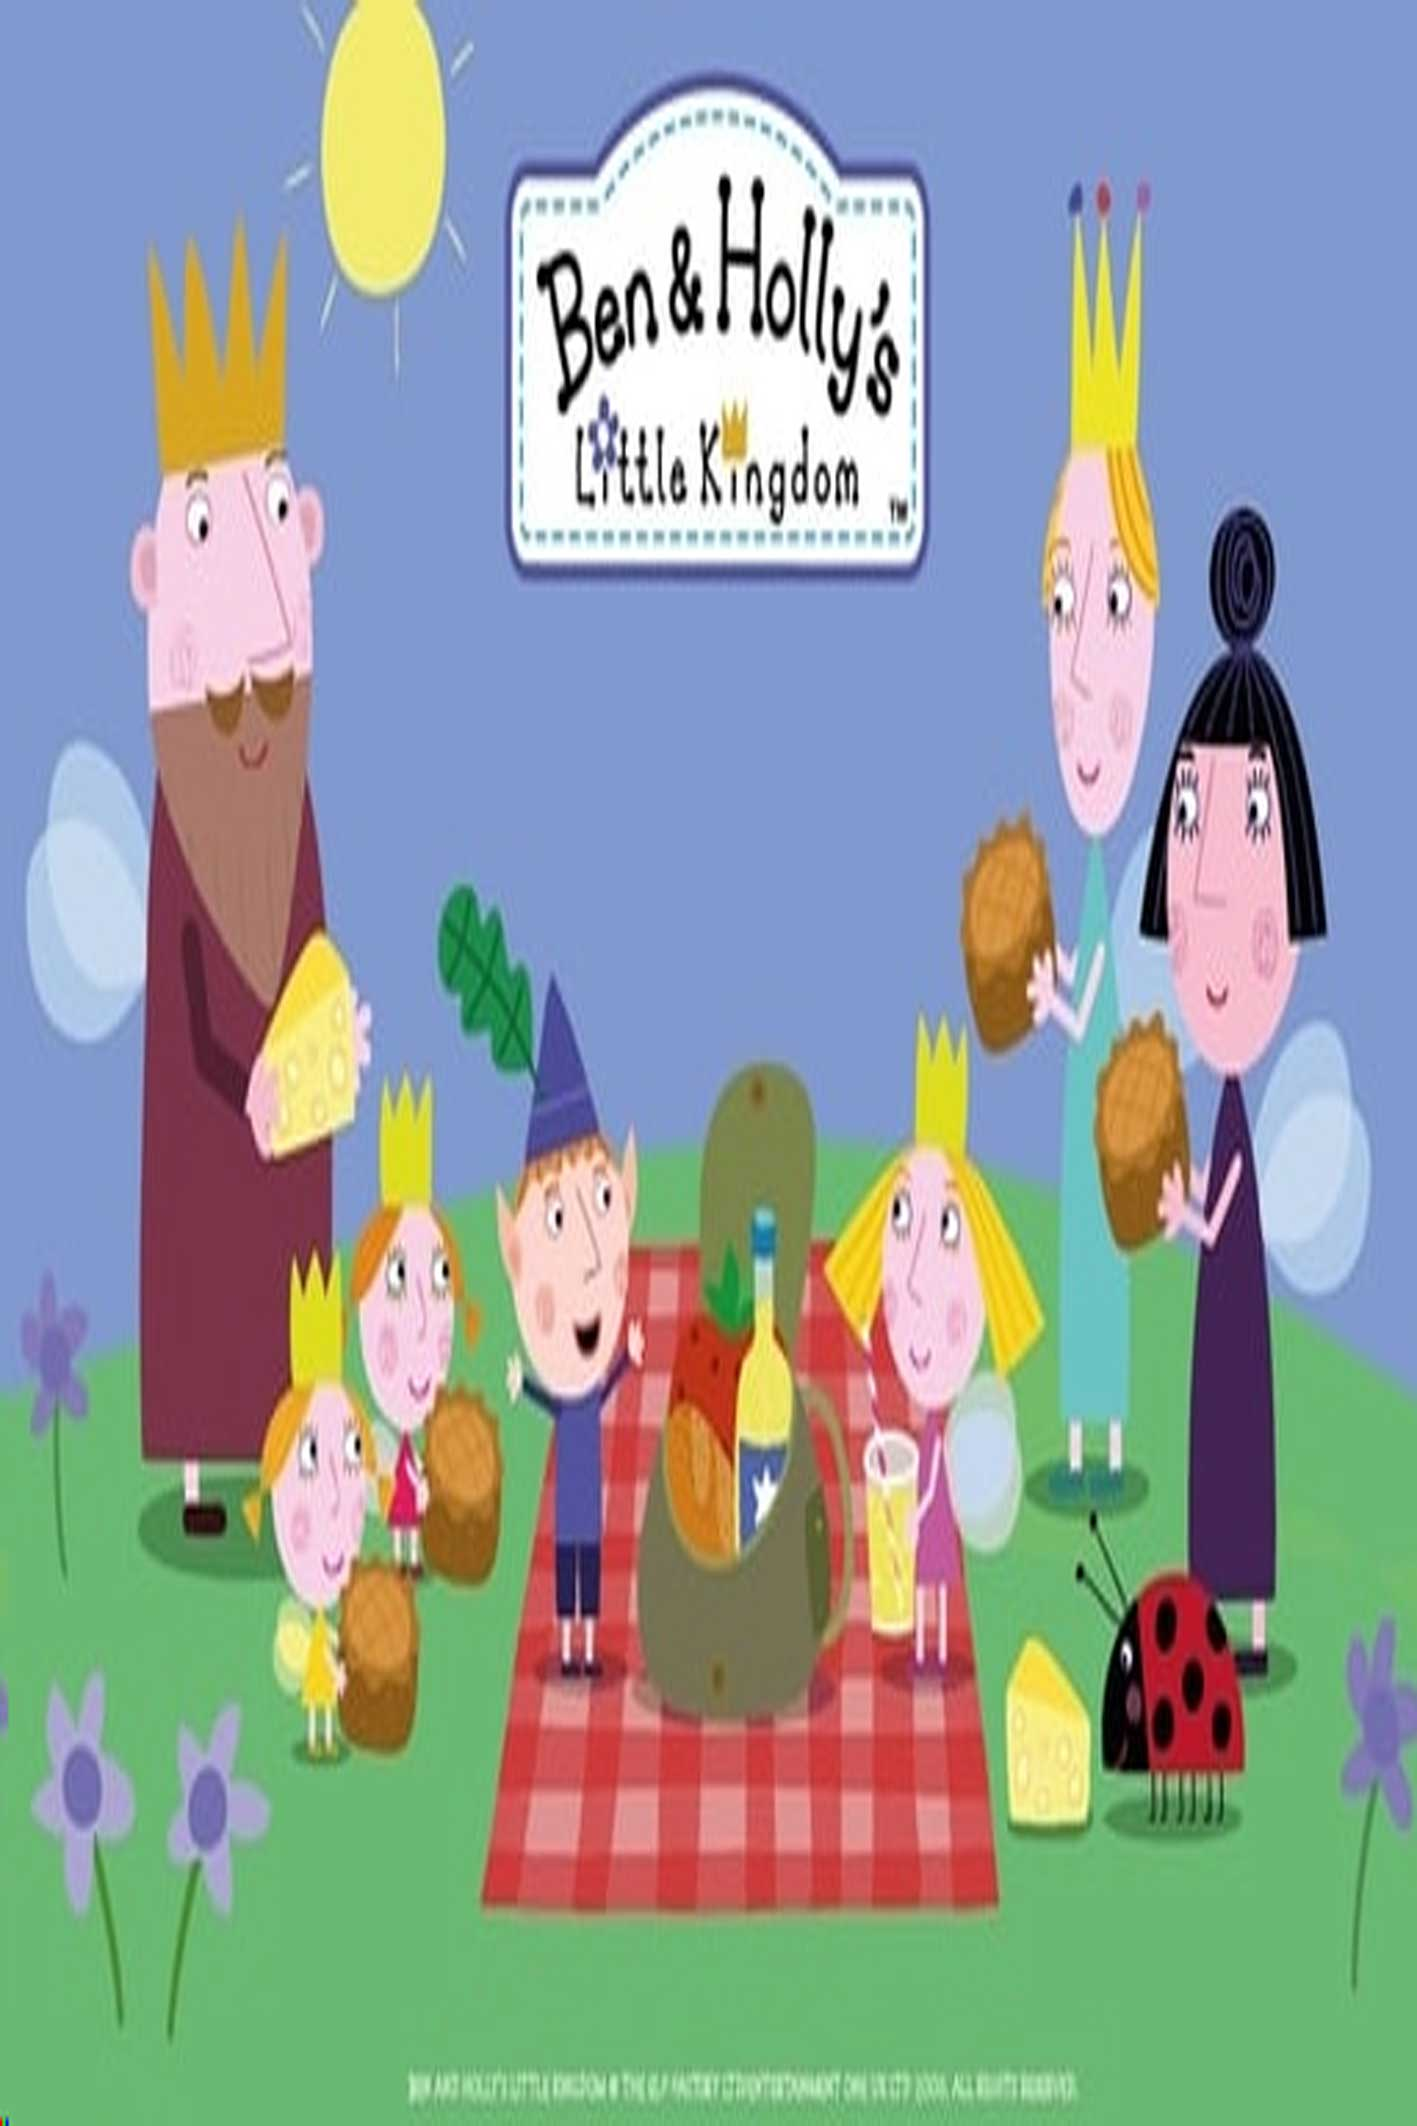 Ben and Holly's Little Kingdom S1 - 班班和莉莉的小王國